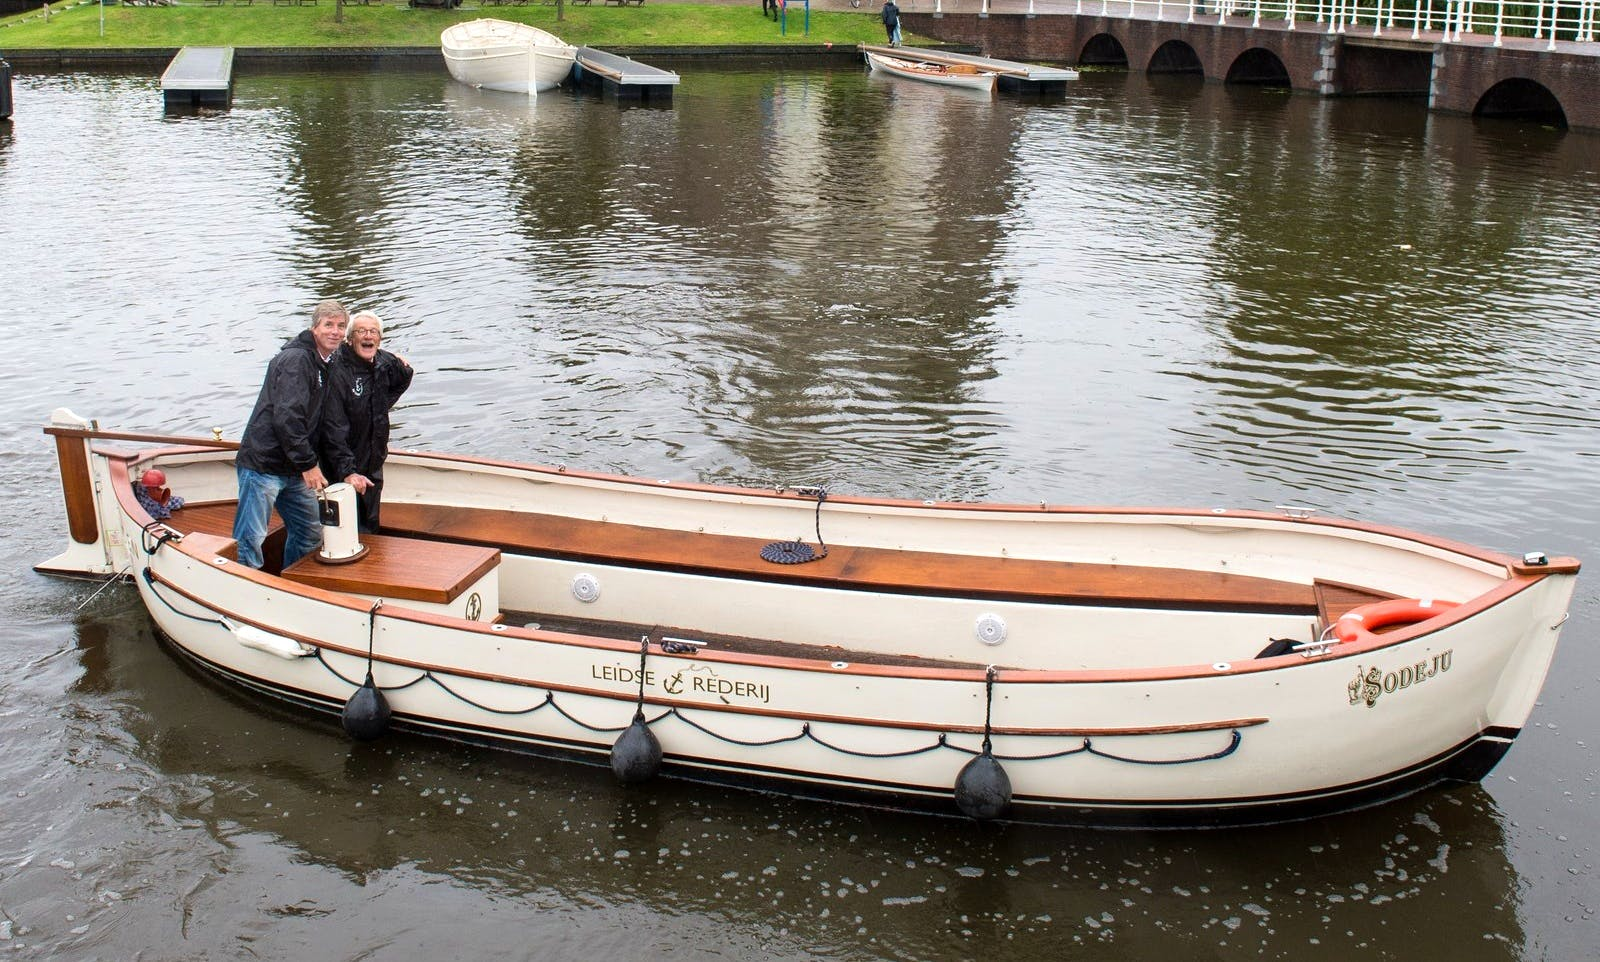 Book a Private and Popular Canal Boat Tour for 24 People in Leiden